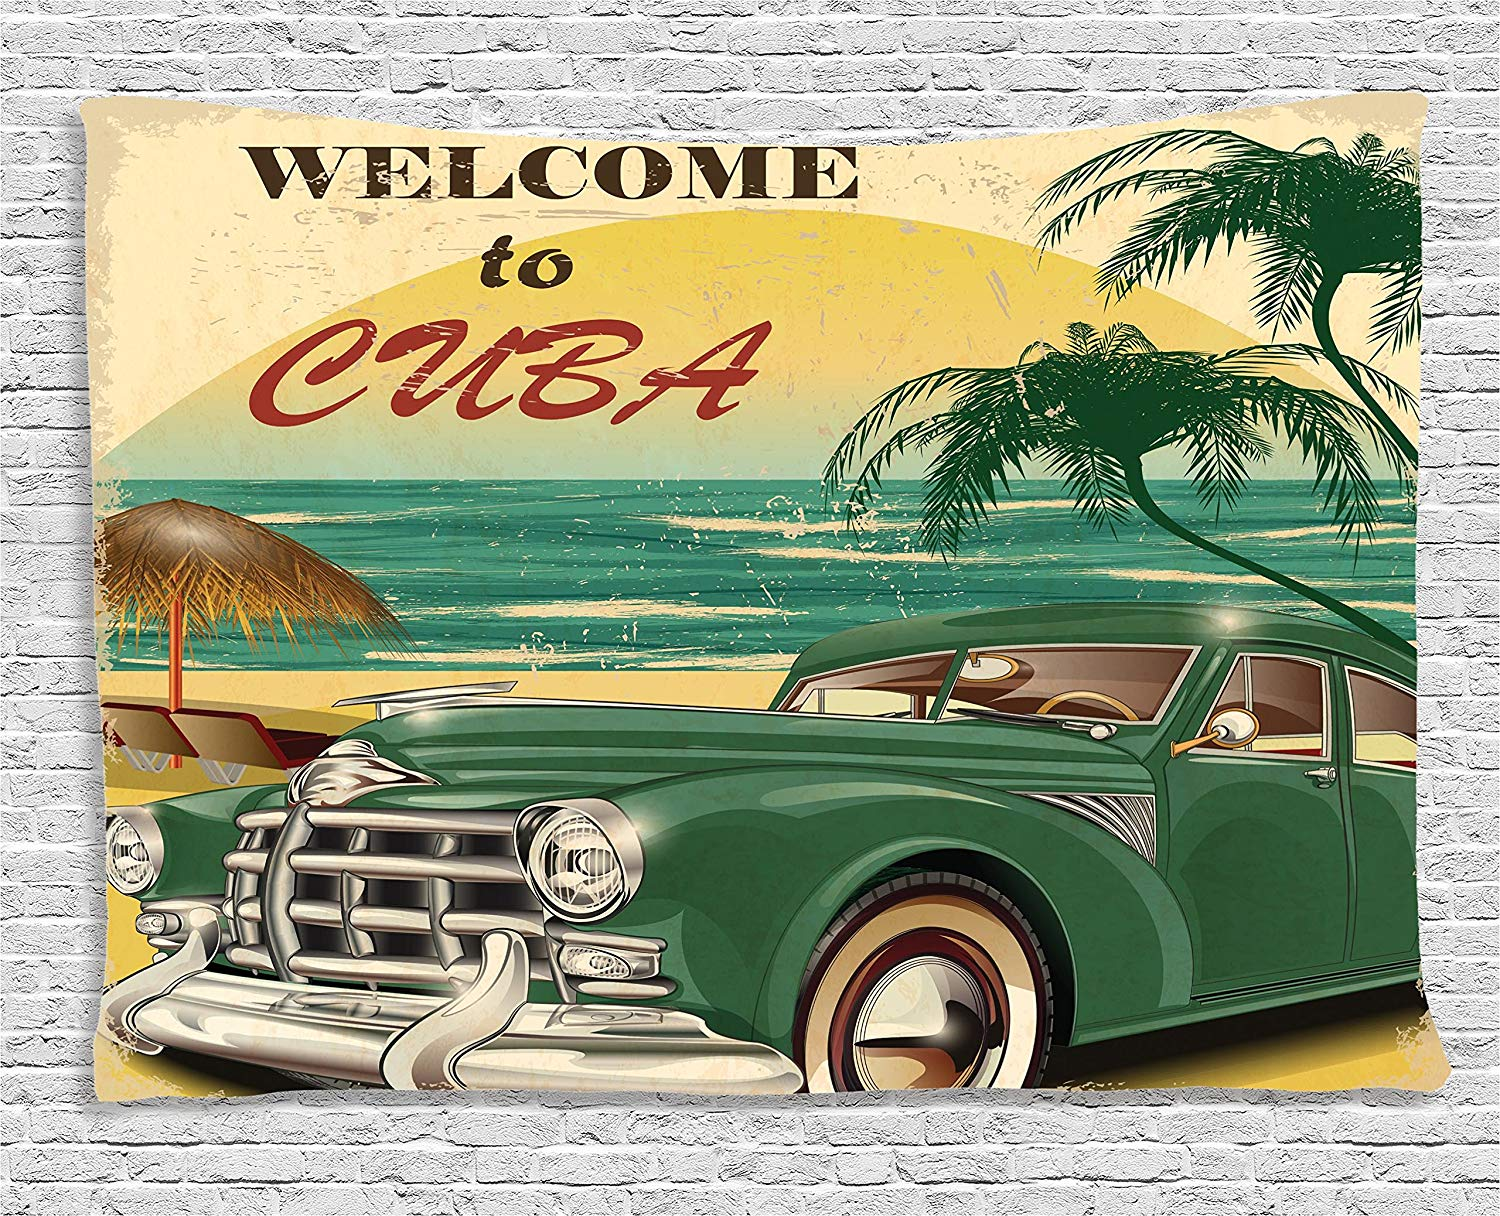 Retro Nostalgic Welcome to Cuba Print with Classic Car Beach Ocean Palm Trees Wide Wall Hanging Green Cream image